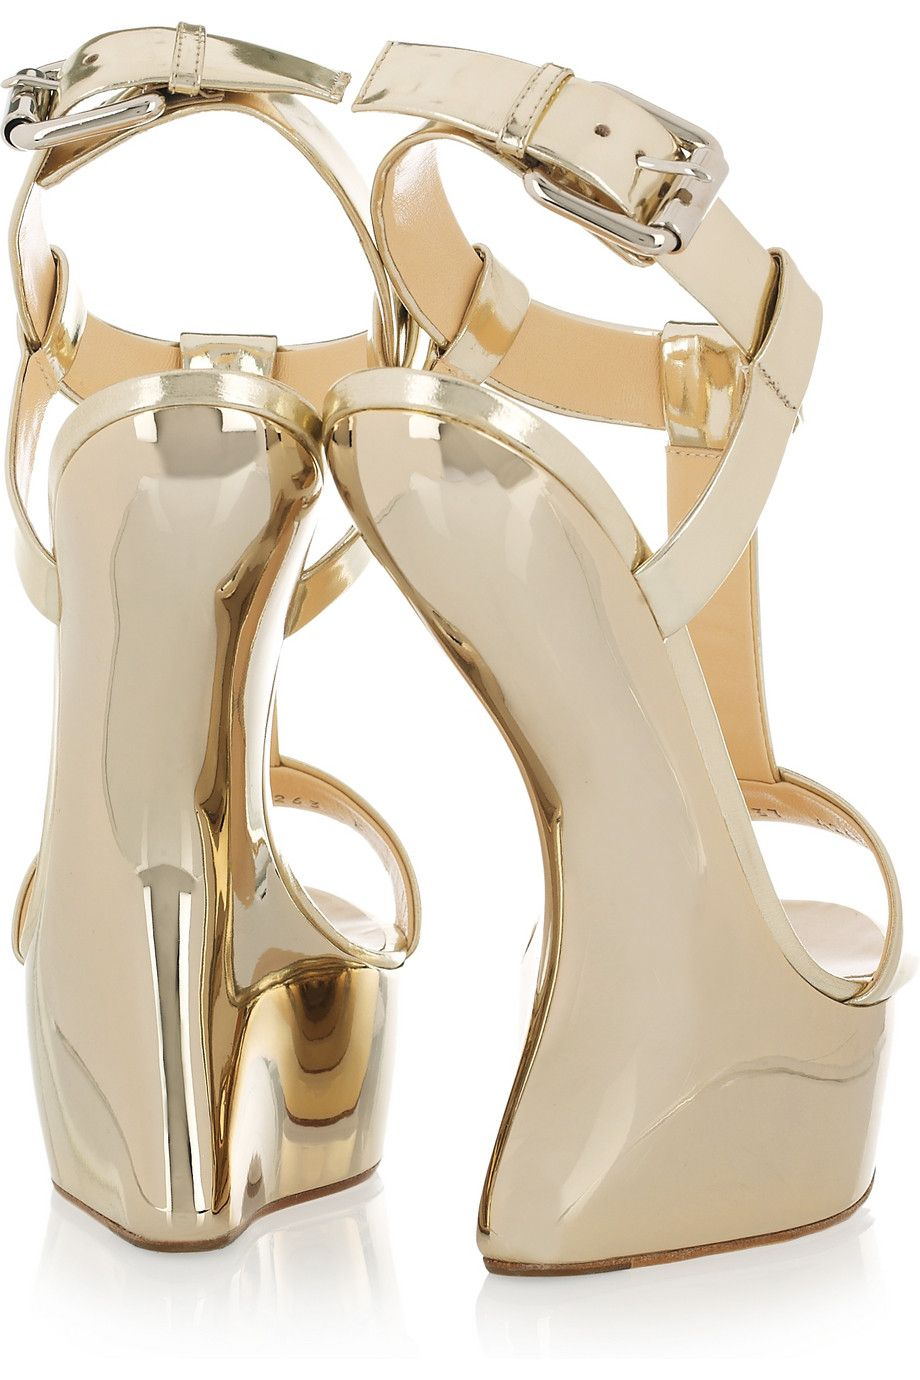 4cc99d8500f86 Shoes like spaceships = yes. Guiseppe Zanotti | favorite things ...